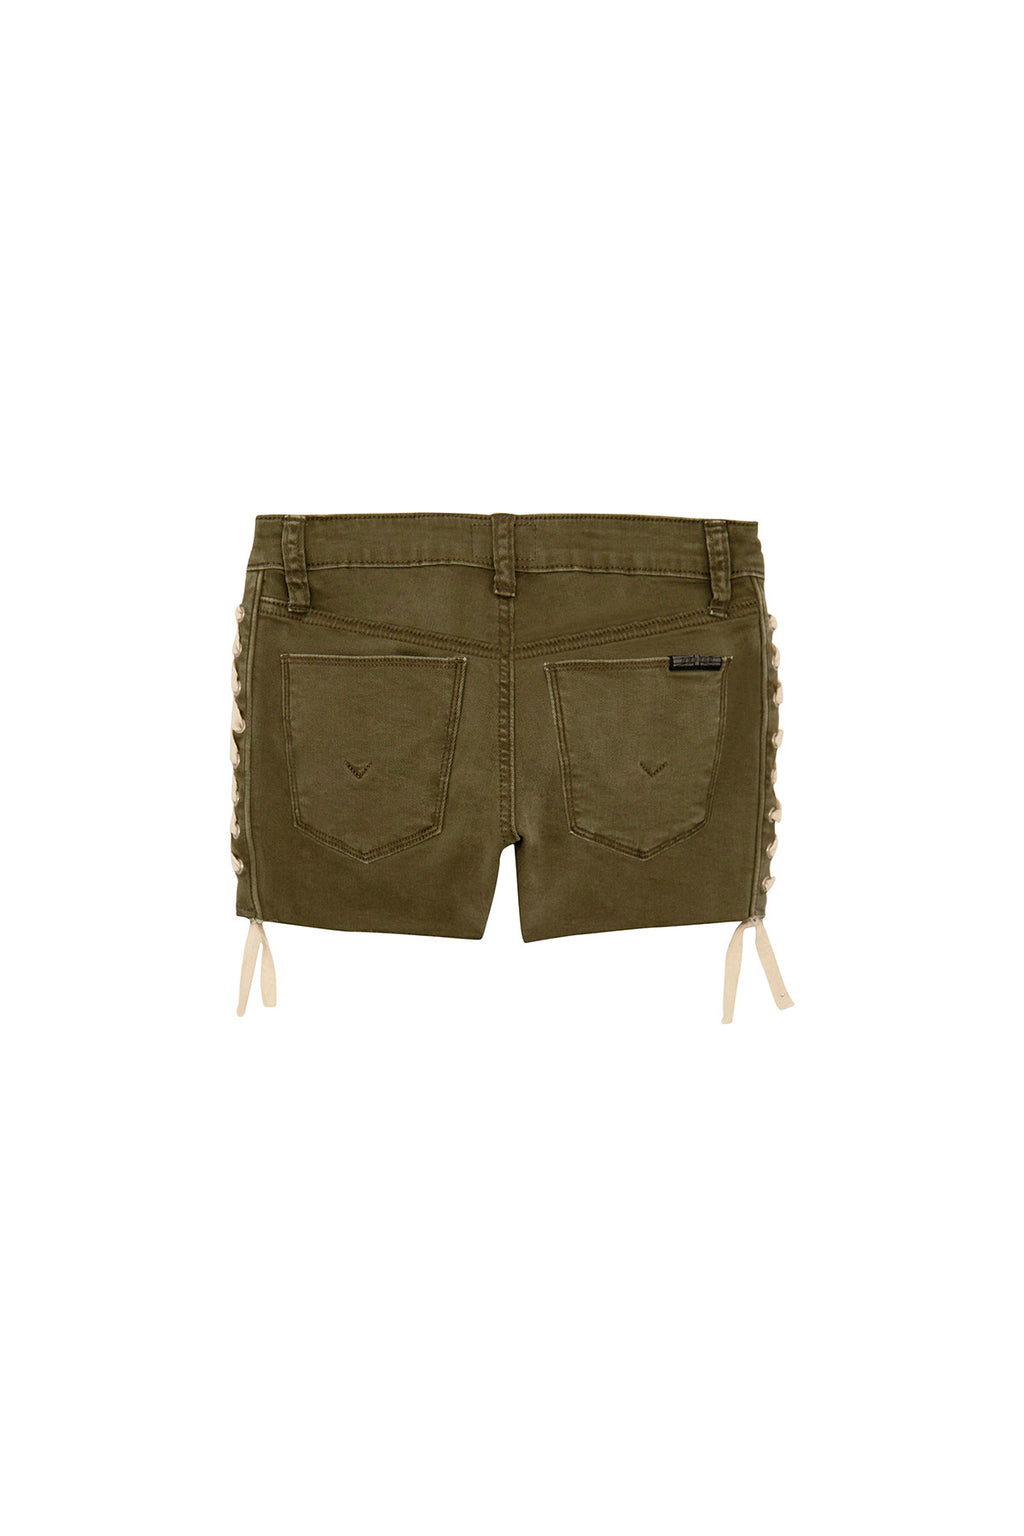 GIRLS BAILEY SHORT, SIZES 7-16 - ARMY GREEN - Image 2